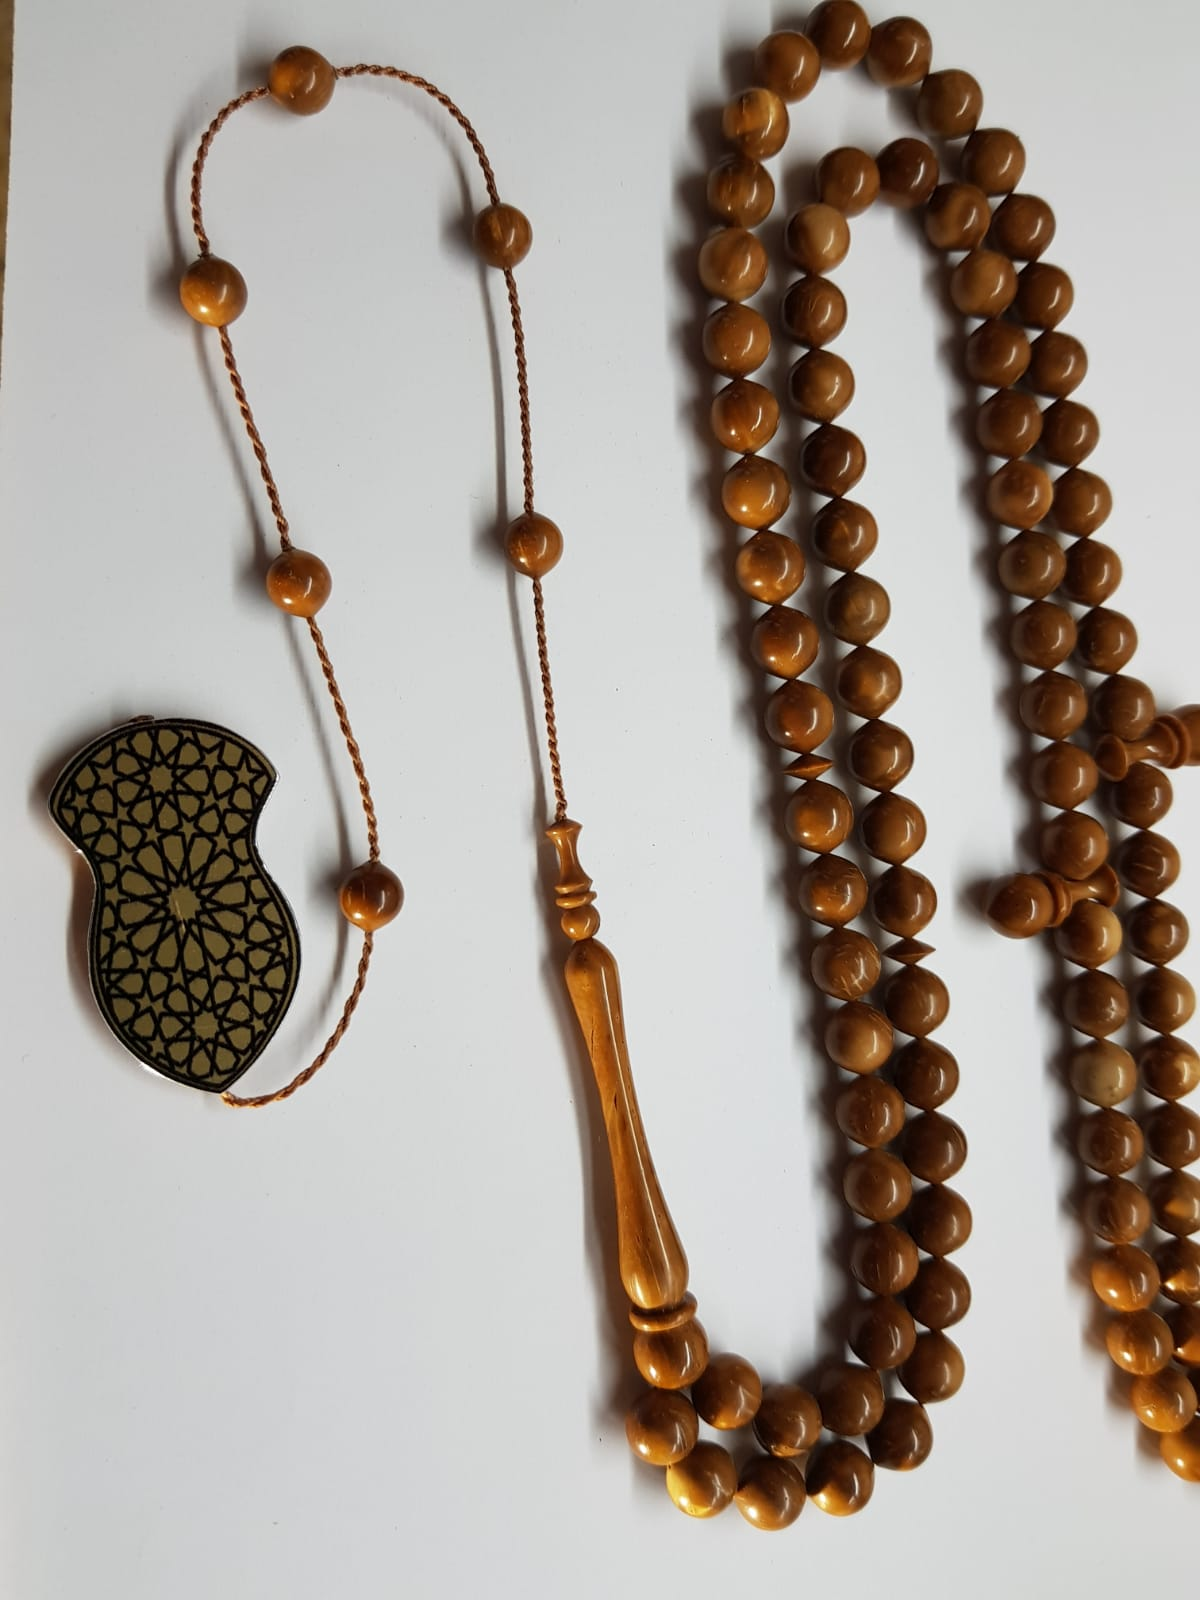 Exclusive Unique Collectors Item - Artisan Hand Made Kuku Wood Tasbih